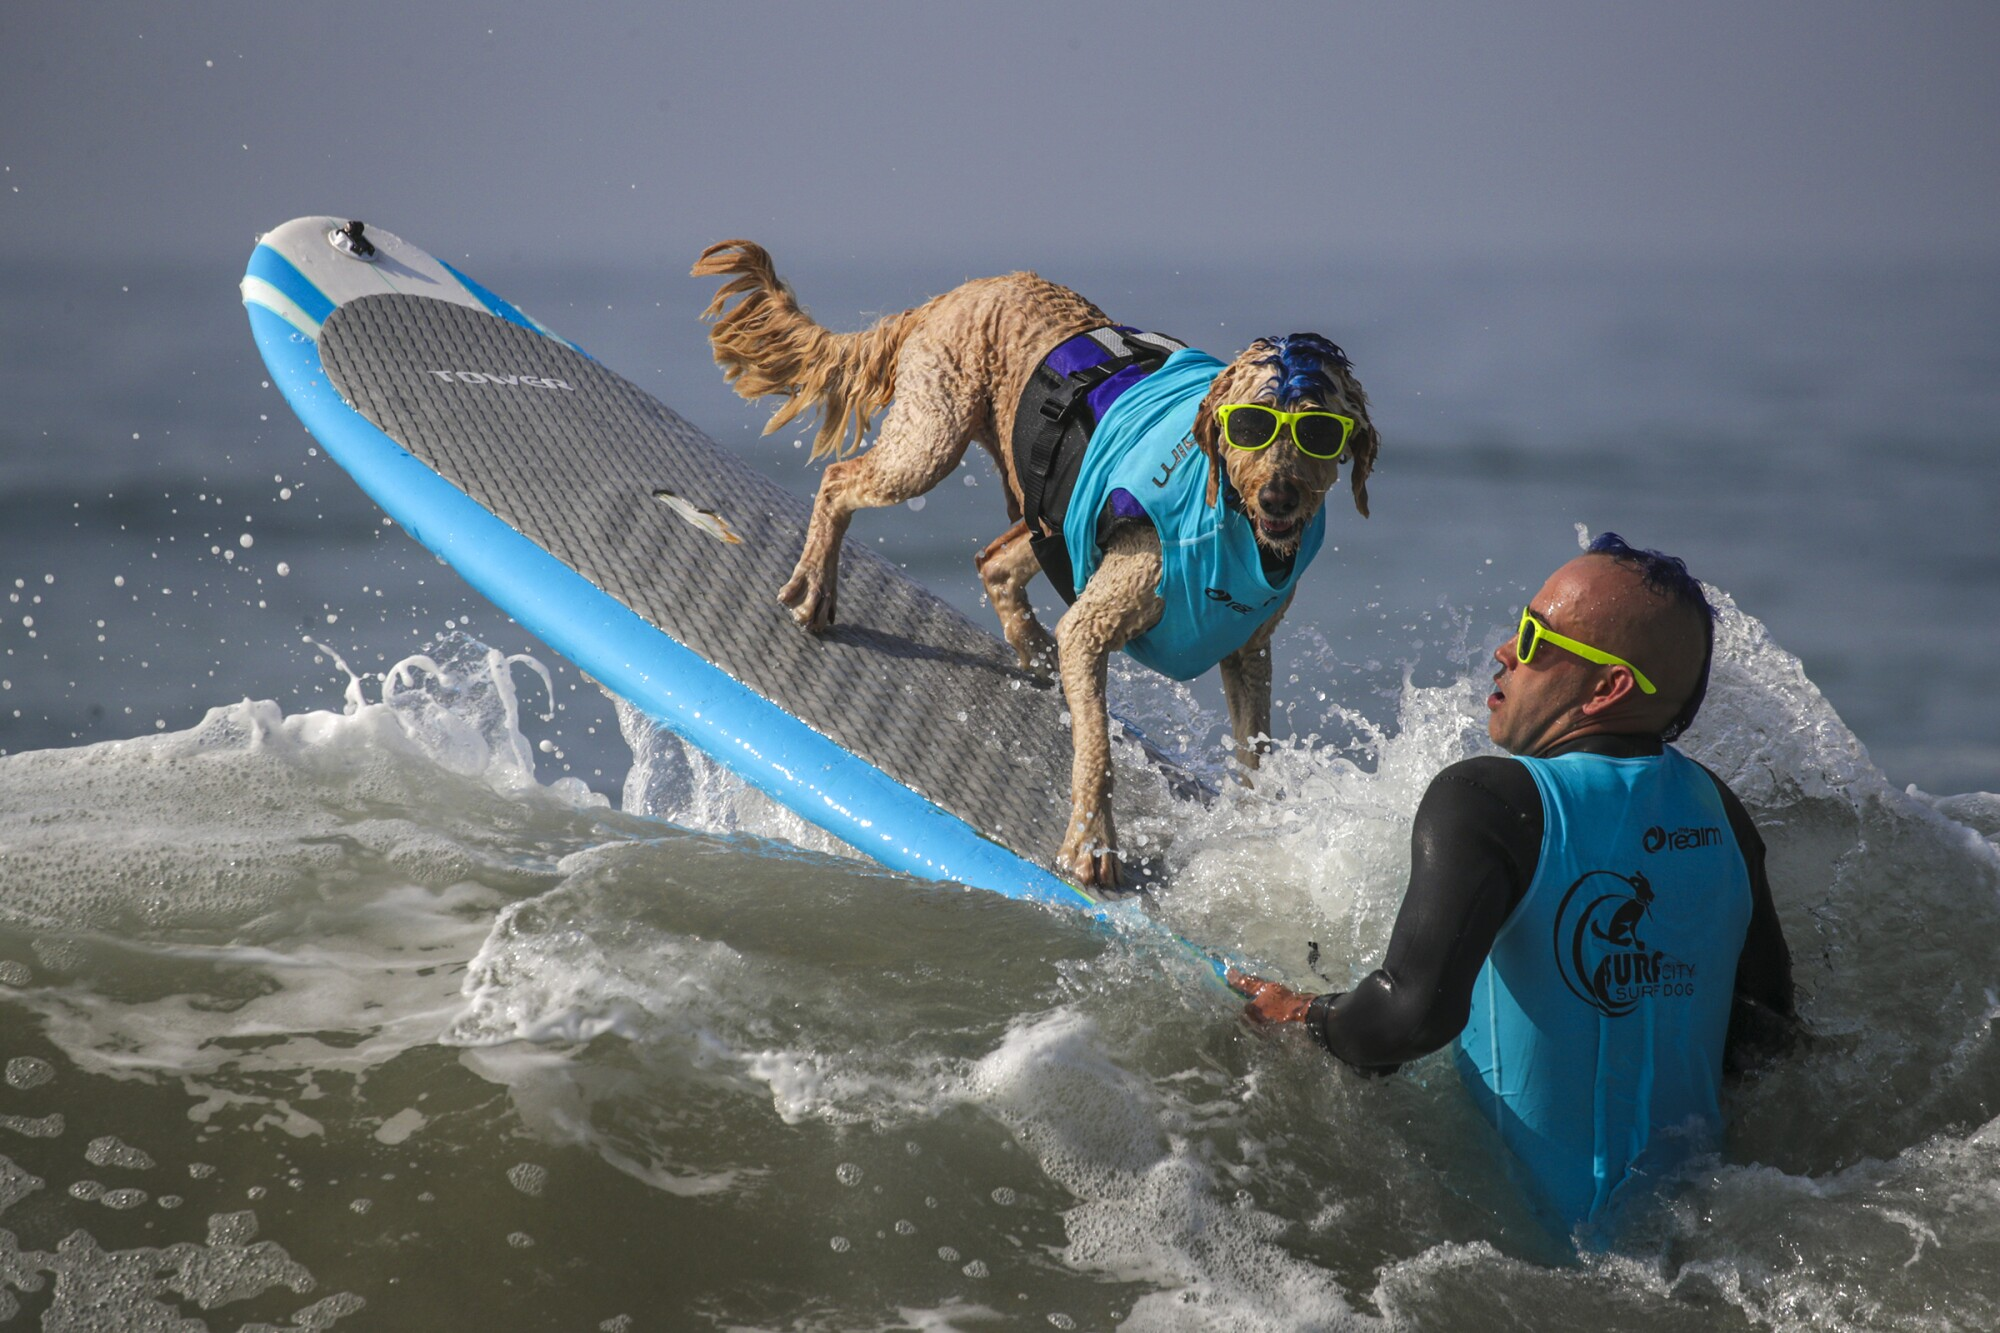 Derby, a 9-year-old Golden Doodle, and Kentucky Gallahue, 41, wait for a good wave.